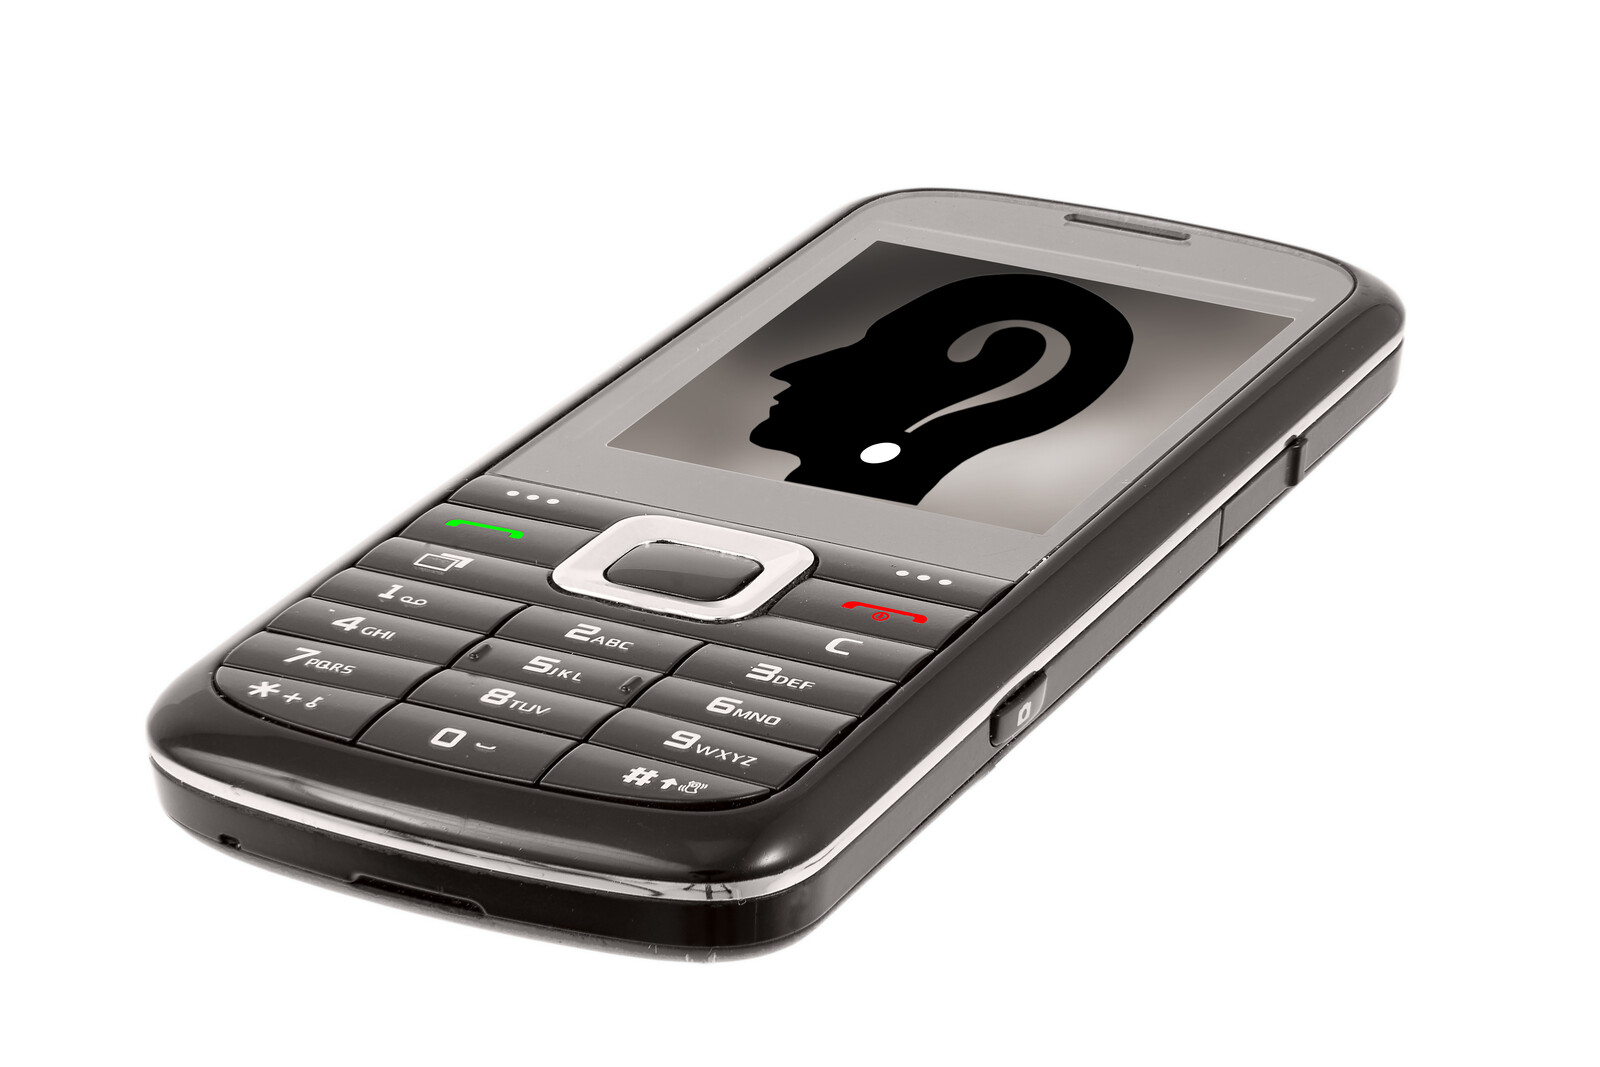 Cell phone with a silloutte of a head with questionmark on it, representing an unknown caller